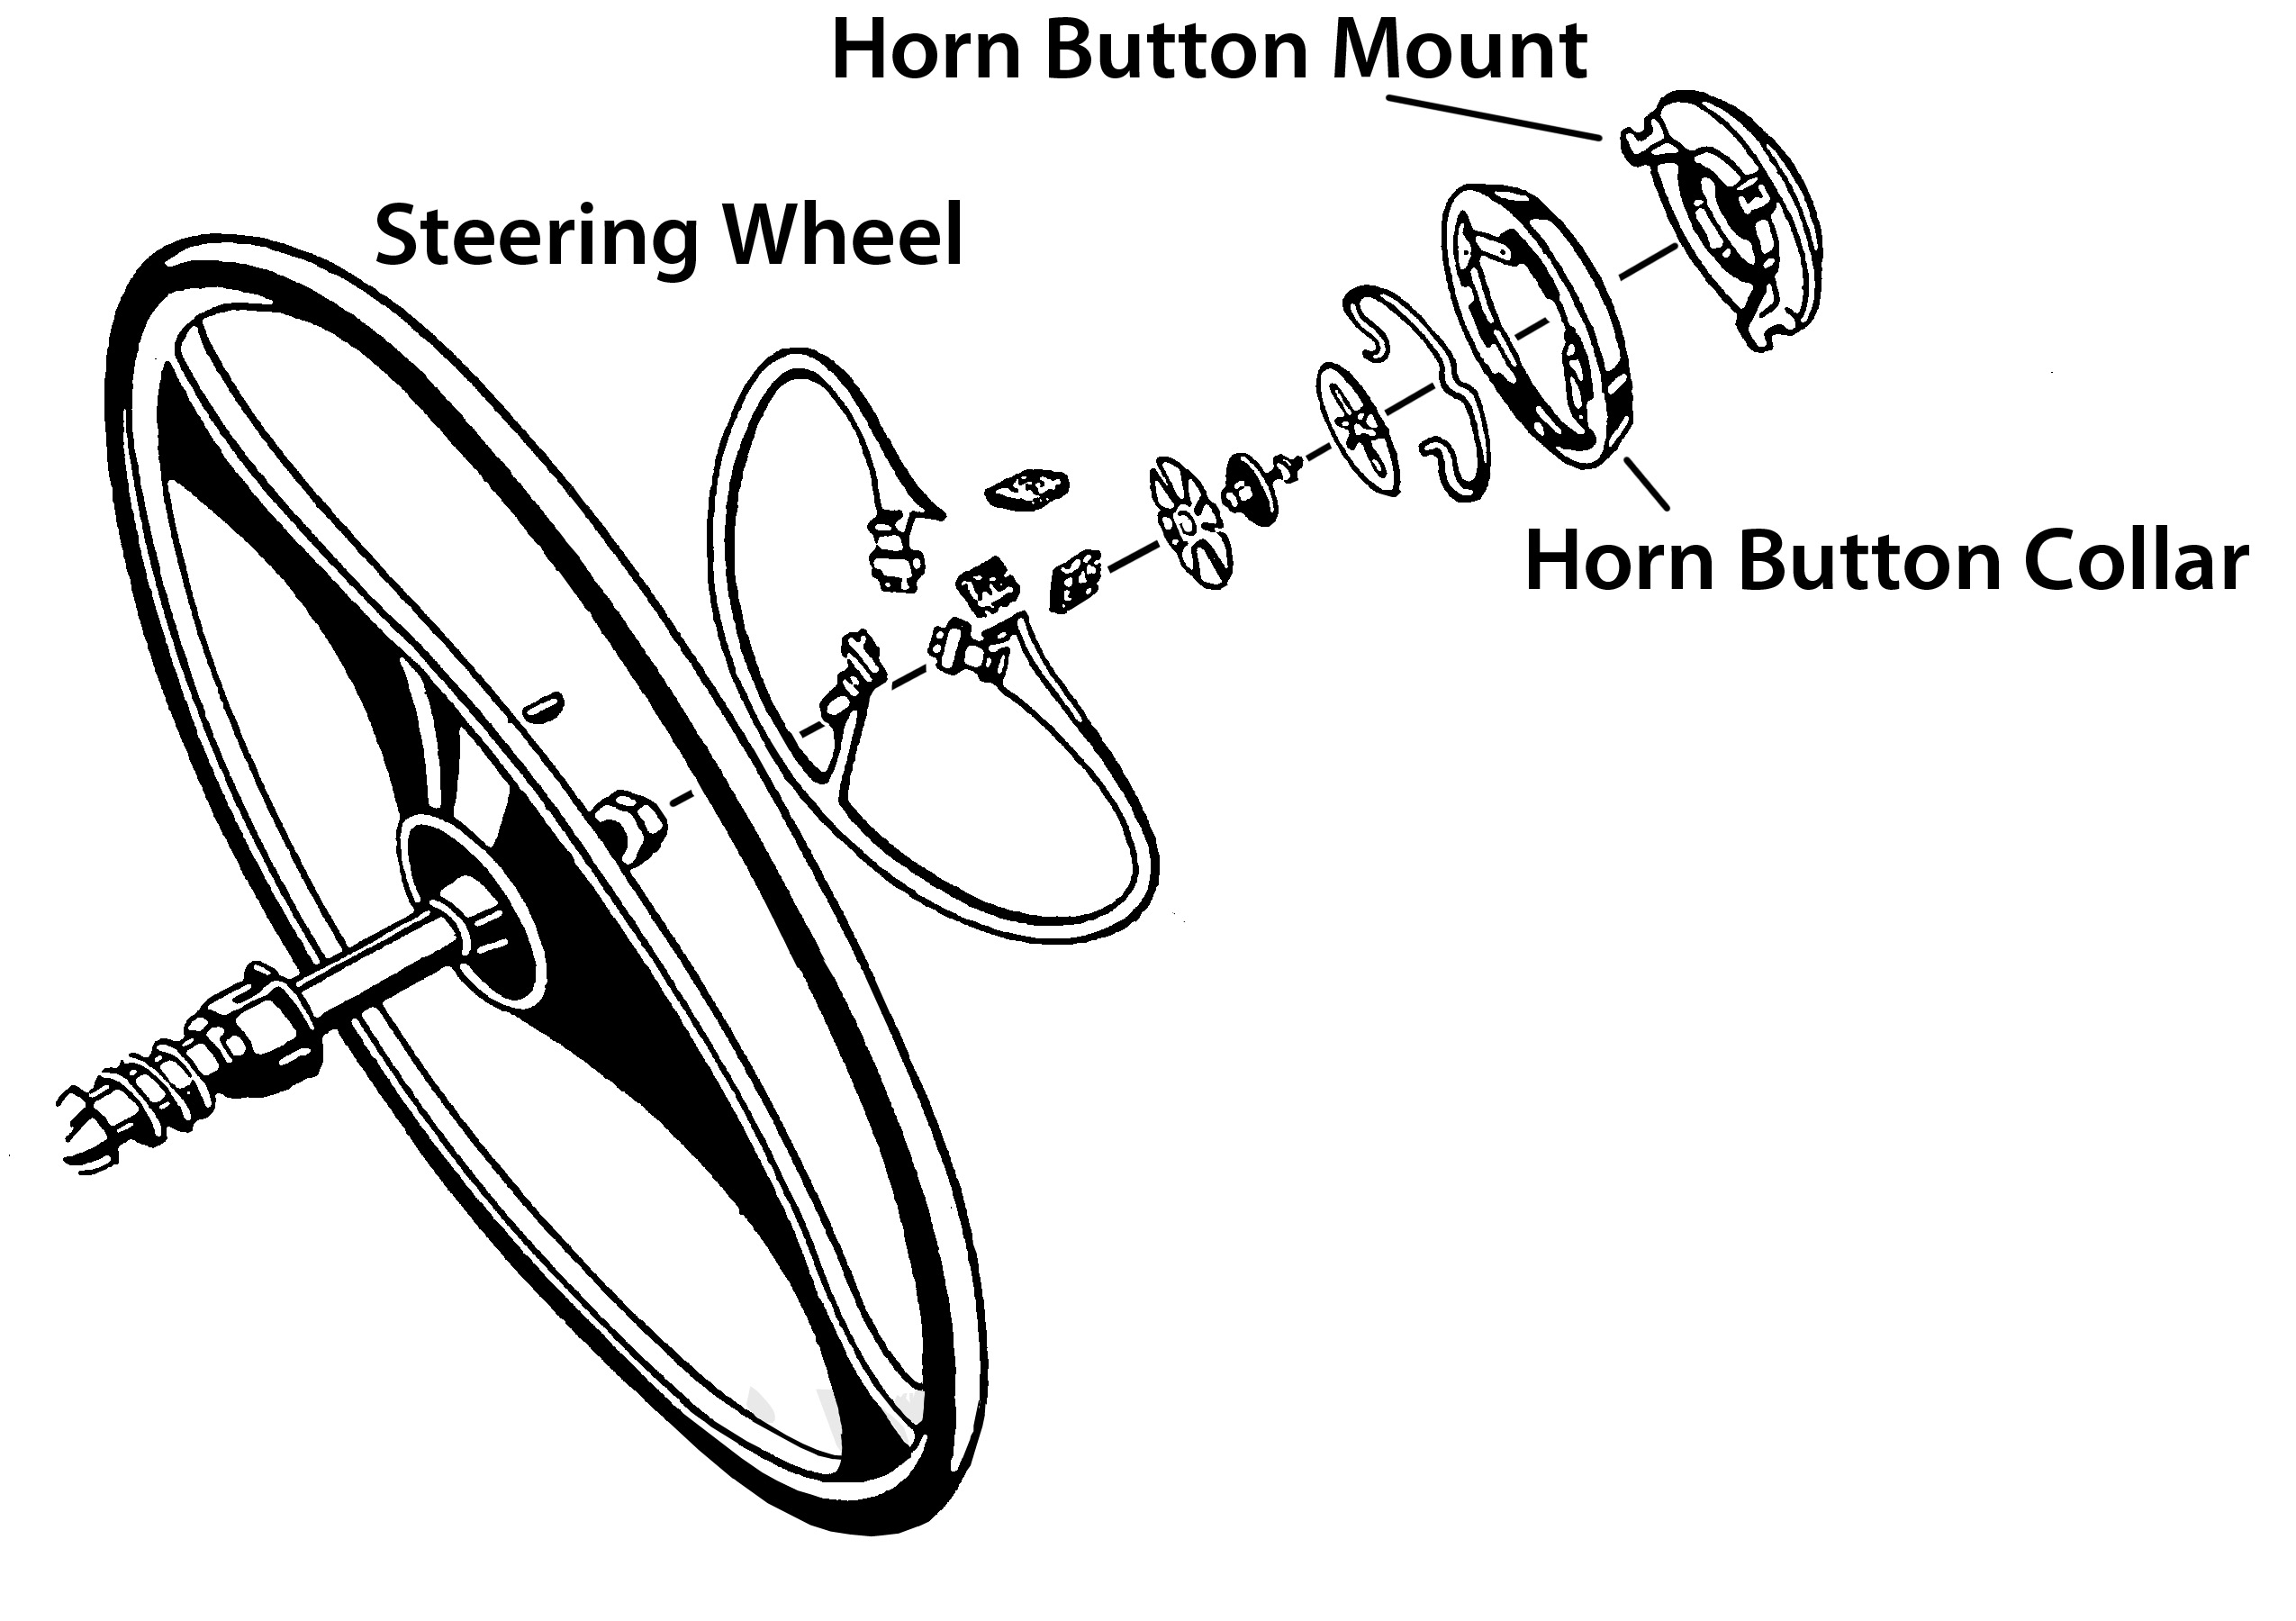 What holds horn button in on 41 LC steering wheel